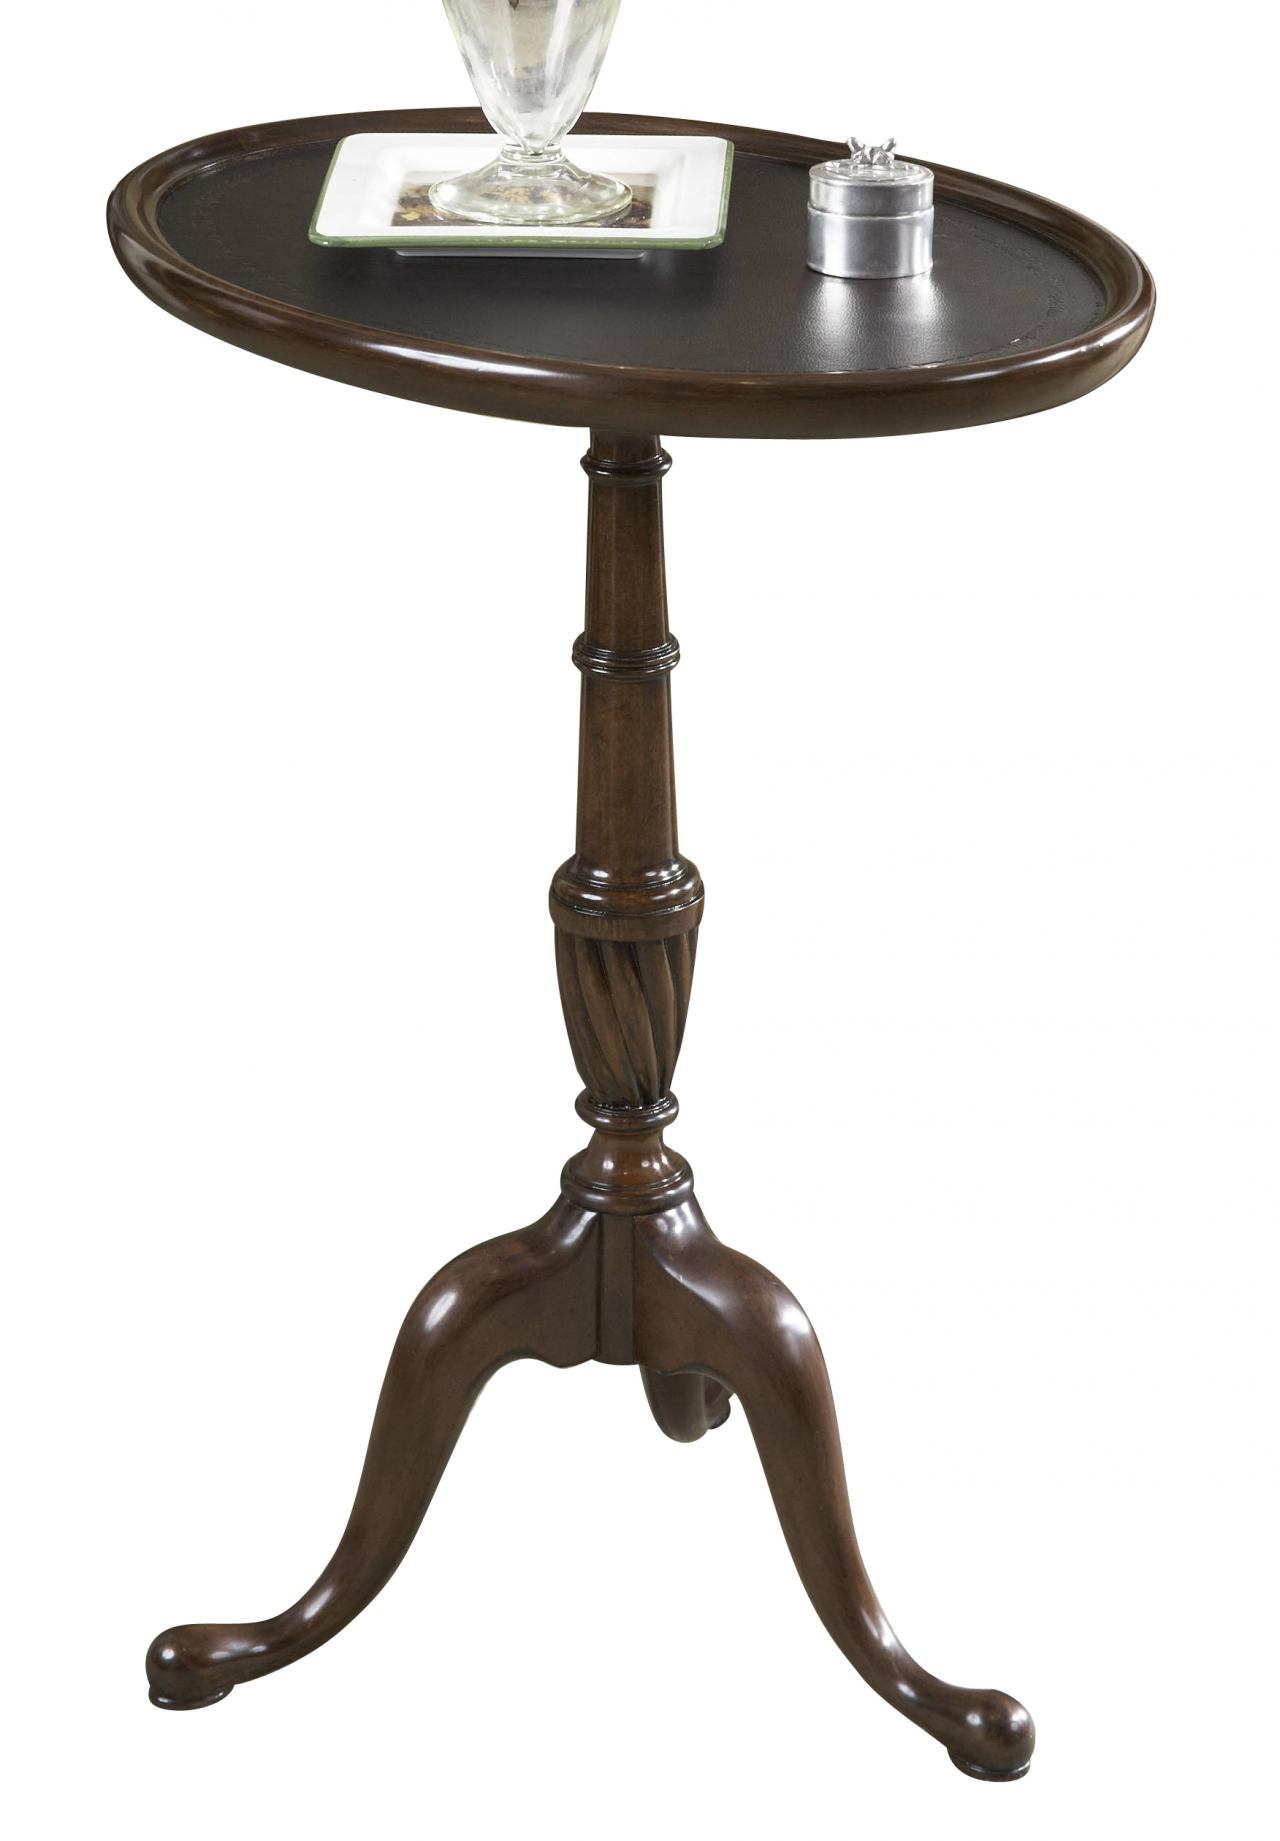 Fine Furniture American Cherry Arlington Table in Potomac Cherry 1020-964